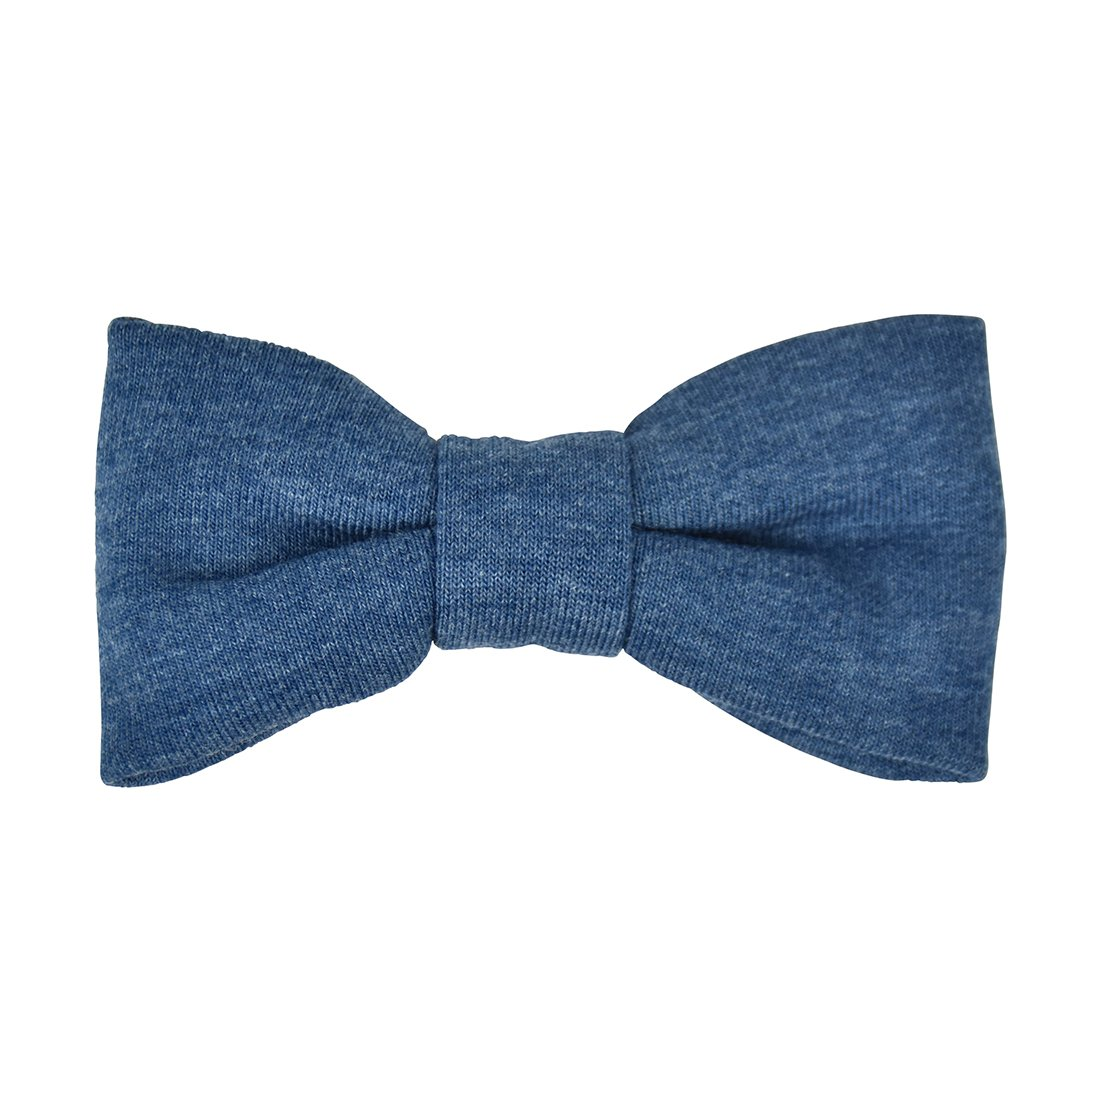 Pre-tied Bowtie for Boys Clip-on Solid Jersey-Chambray